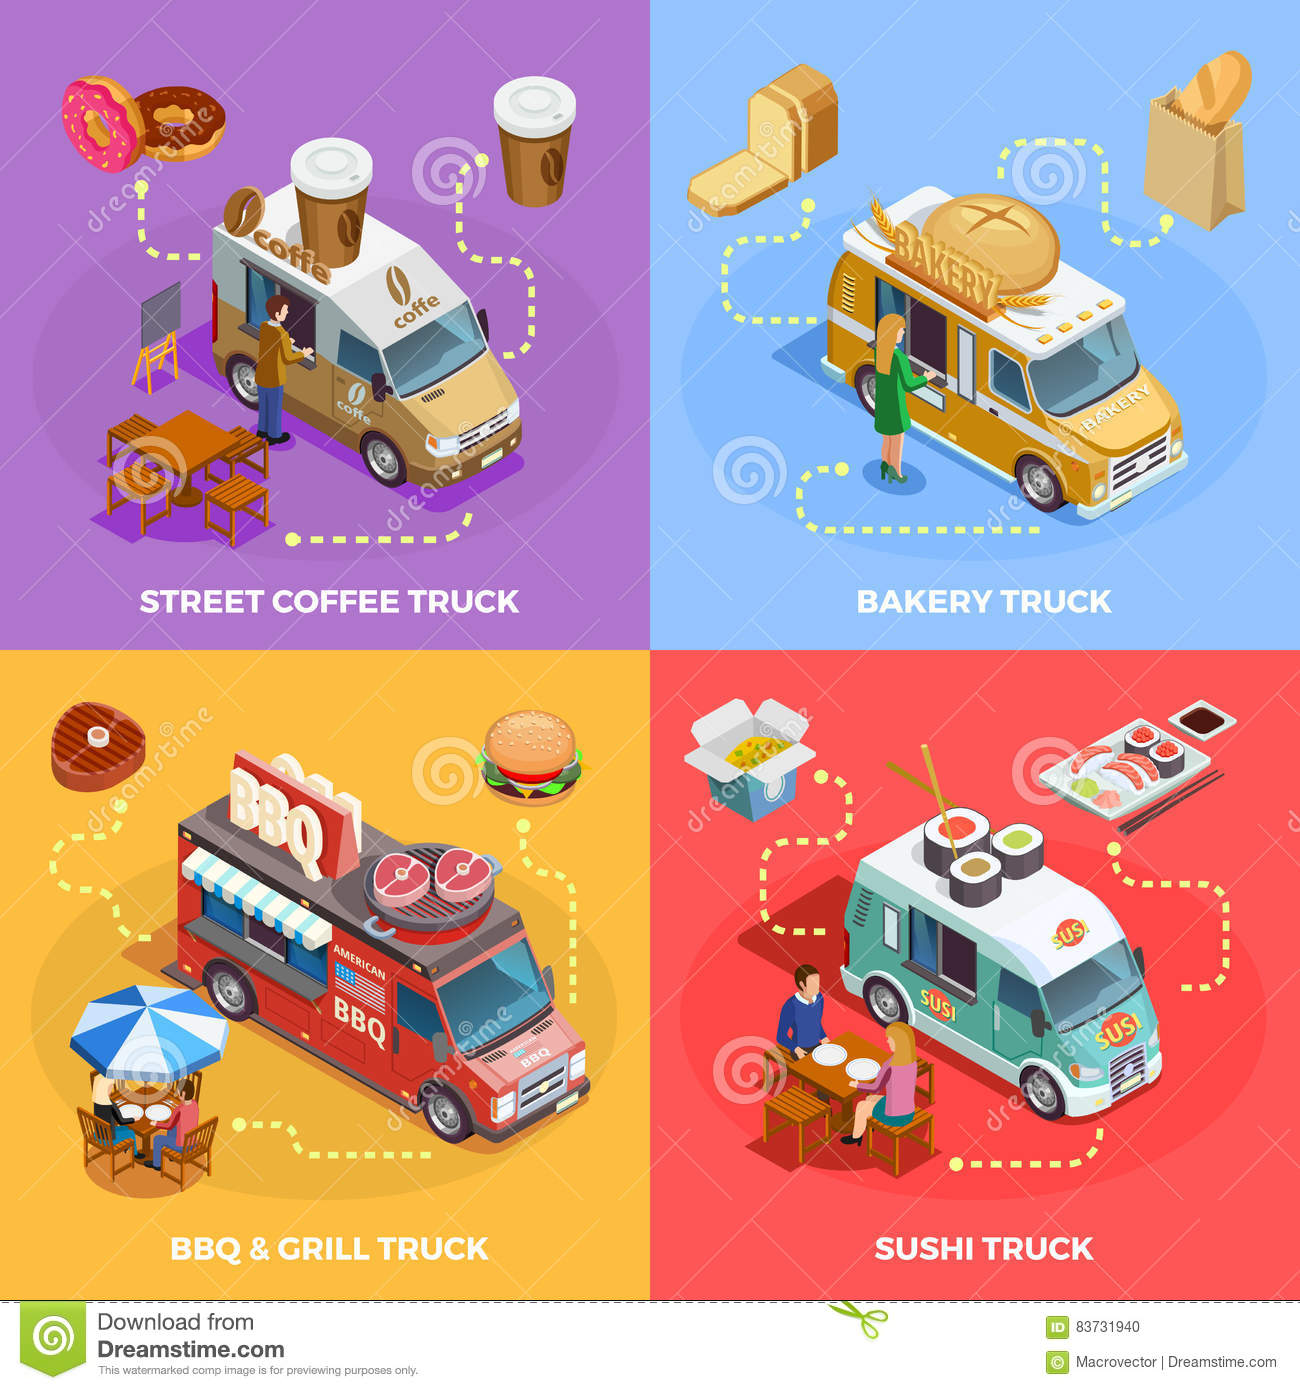 Bbq Food Truck Prices